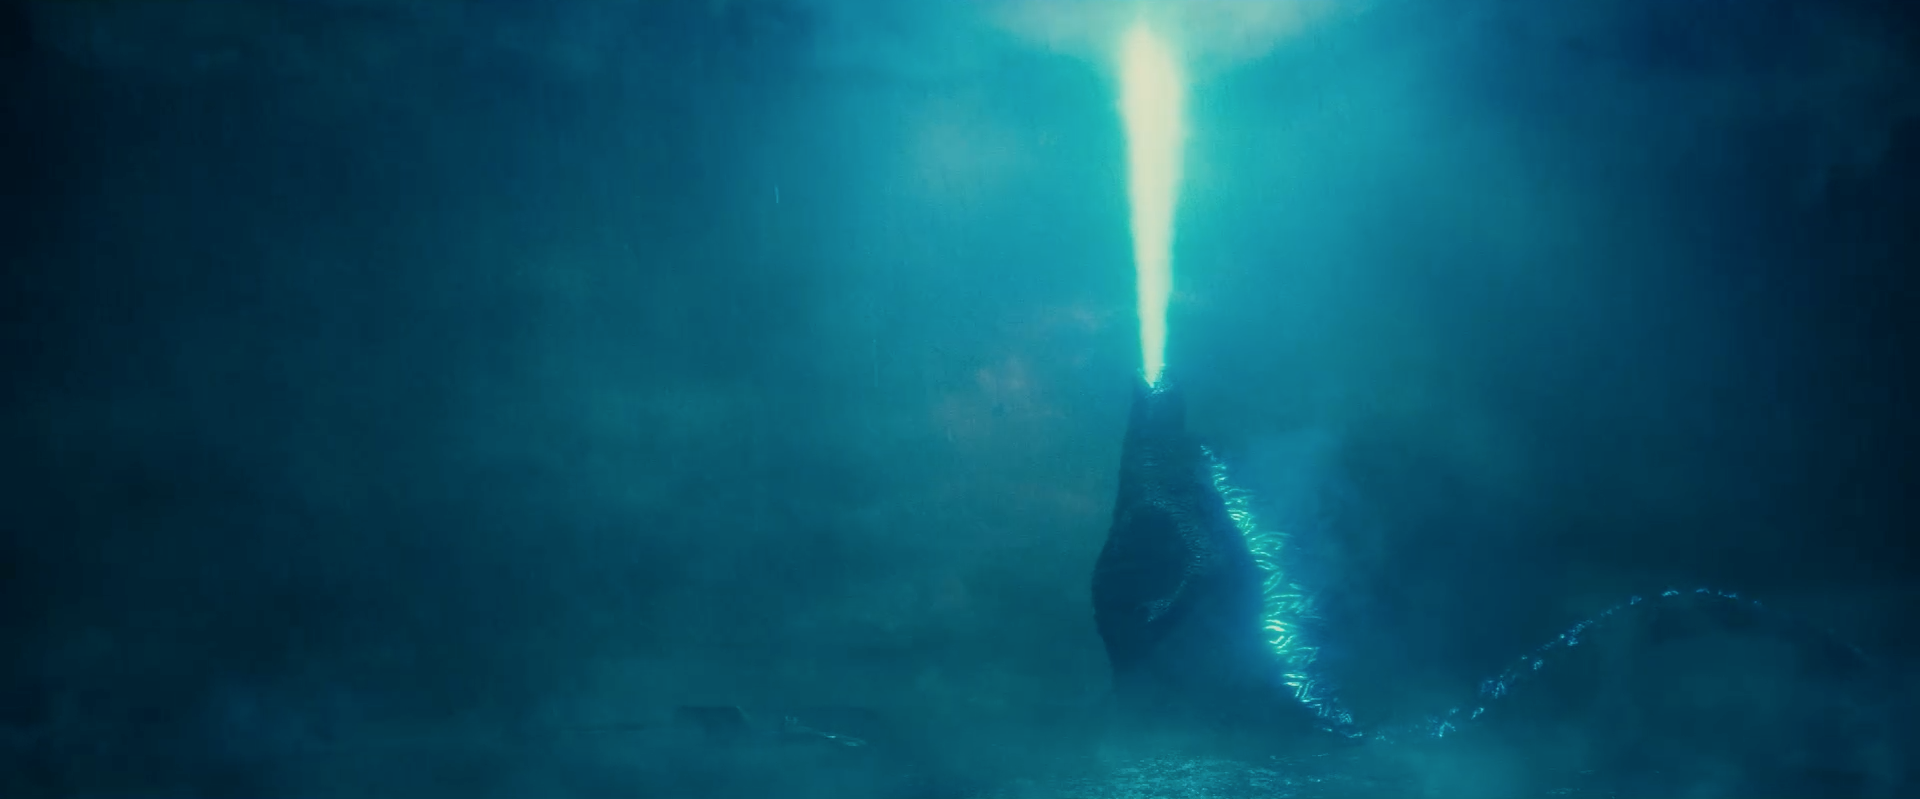 Godzilla: King of the Monsters - Godzilla: King of the Monsters, Life